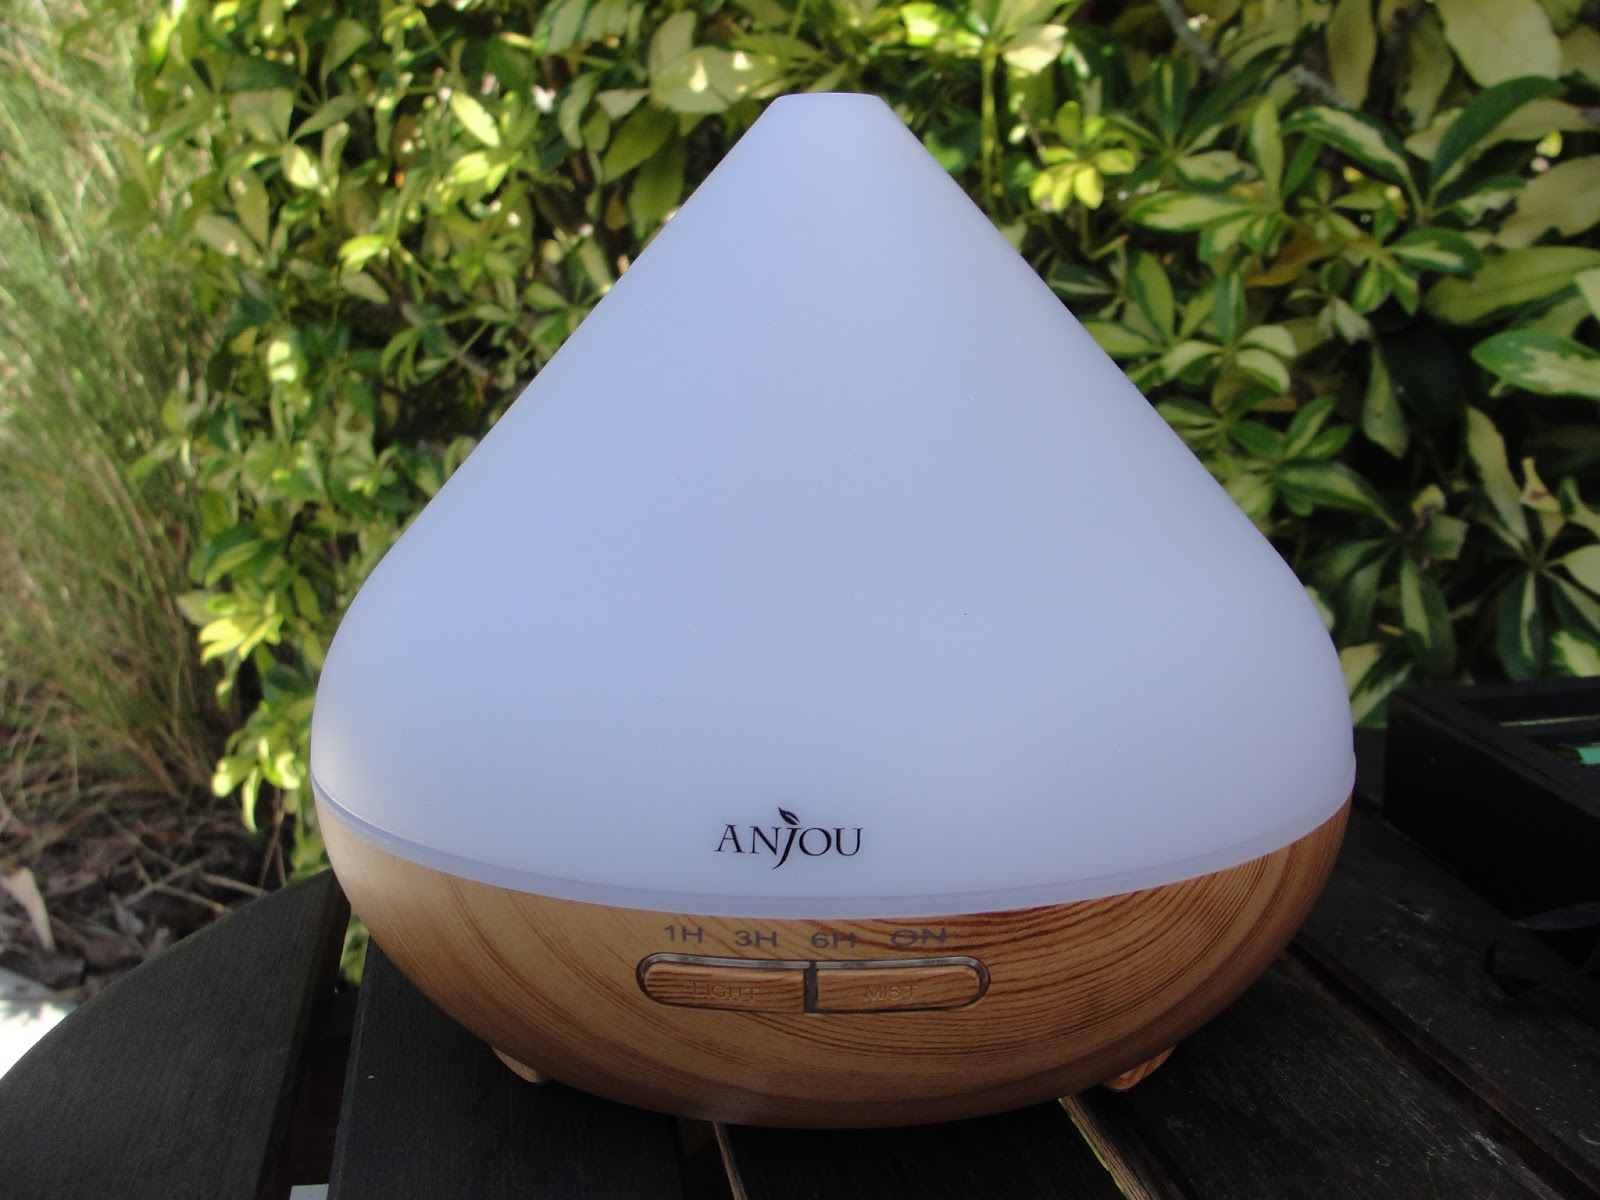 #4A5F20 Anjou Aromatherapy Diffuser & Essential Oils Set  Most Effective 1175 Aromatherapy Diffuser Set pictures with 1600x1200 px on helpvideos.info - Air Conditioners, Air Coolers and more